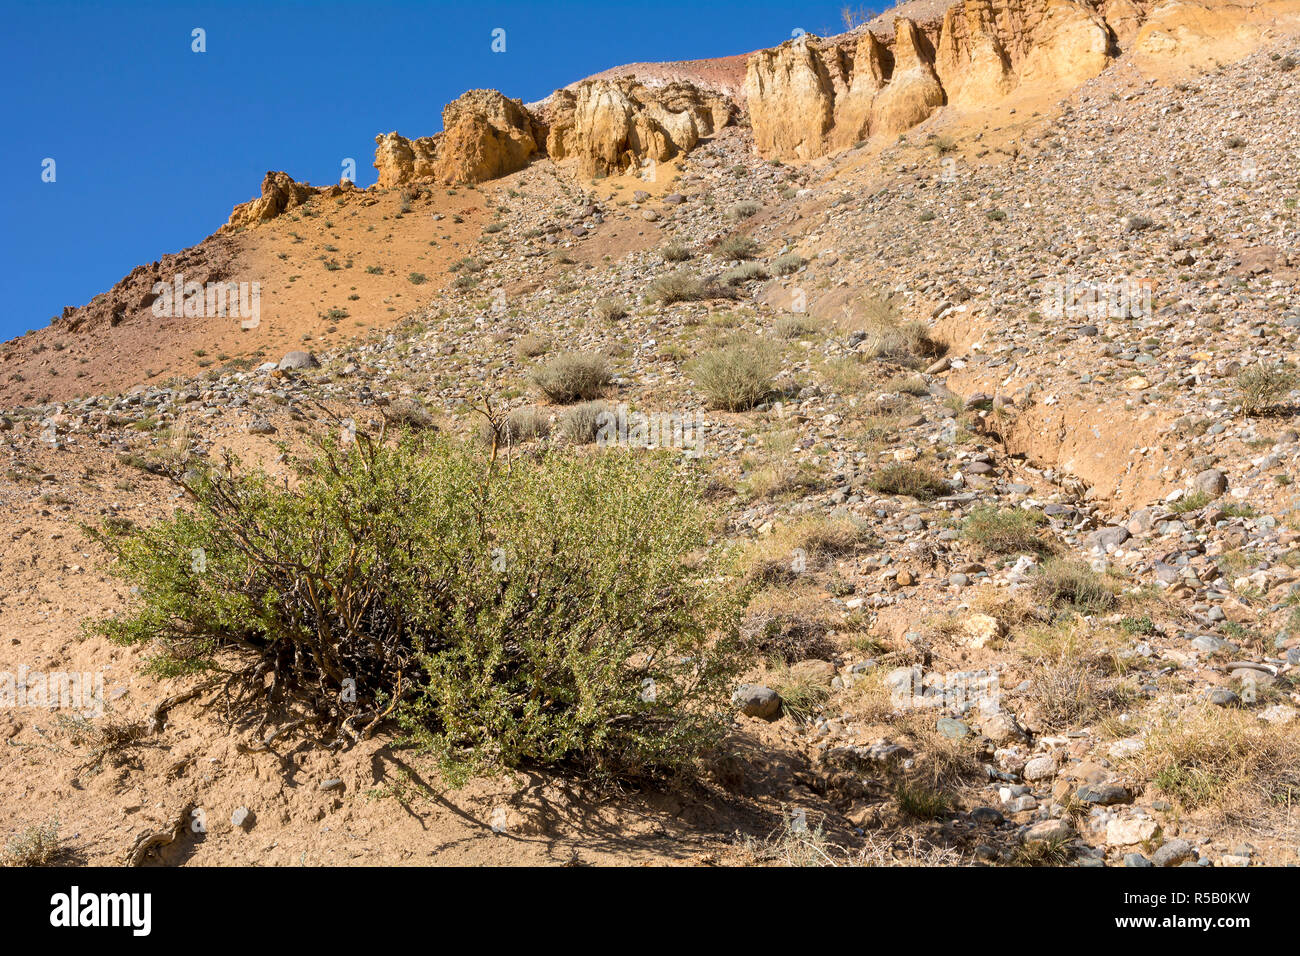 Bush Caragana pygmaea on a hillside in the valley of the Kyzyl-Chin, Chuya steppe, Altai Republic - Stock Image